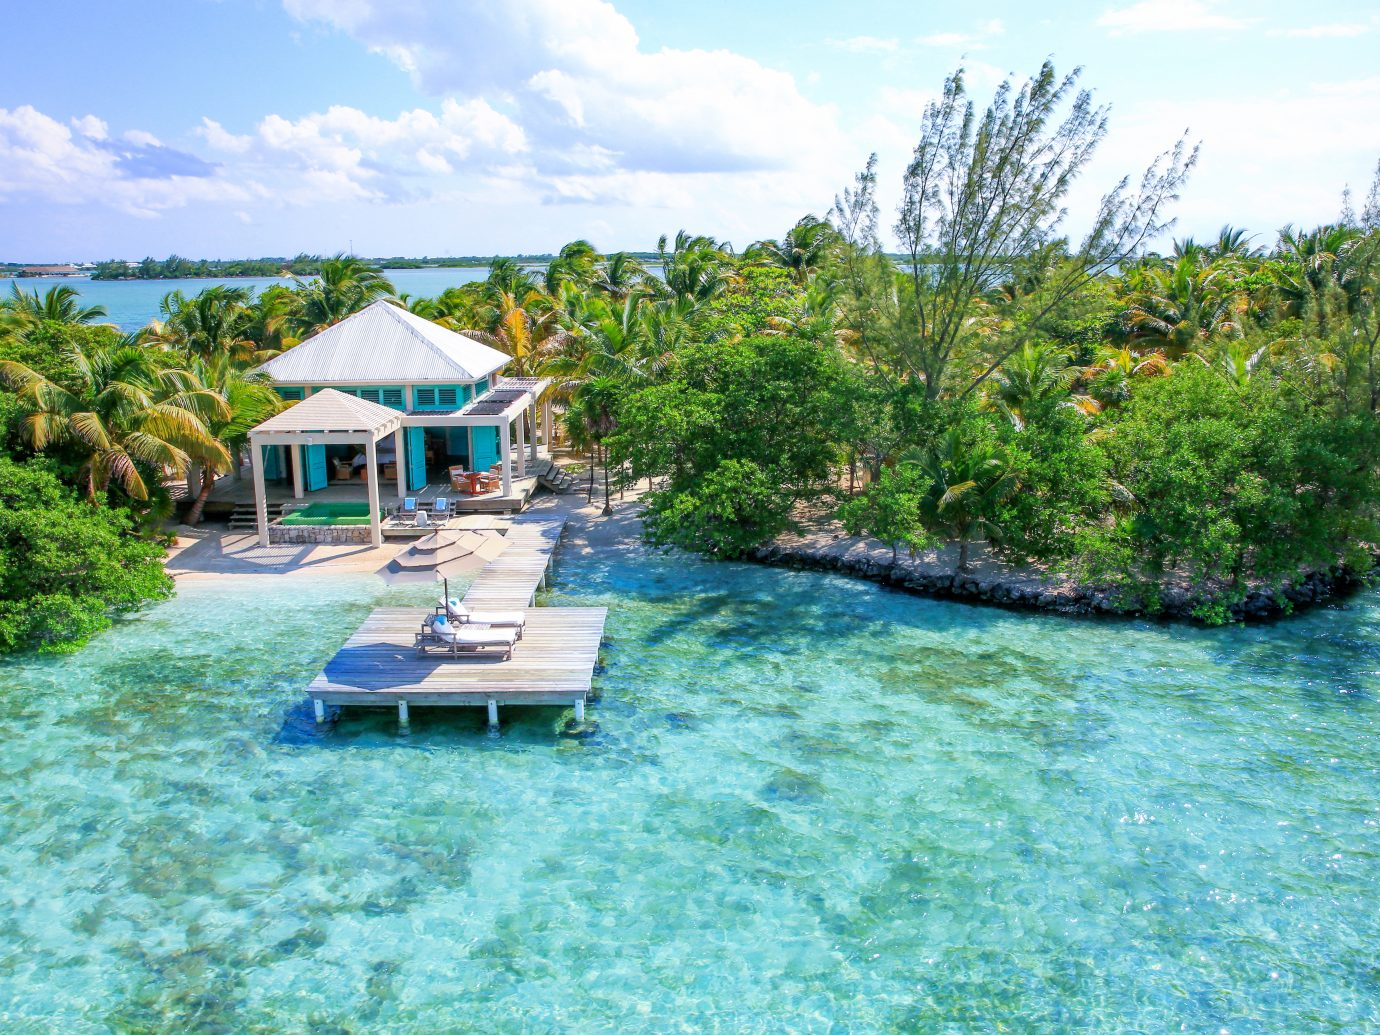 Island resort Cayo Espanto in Belize